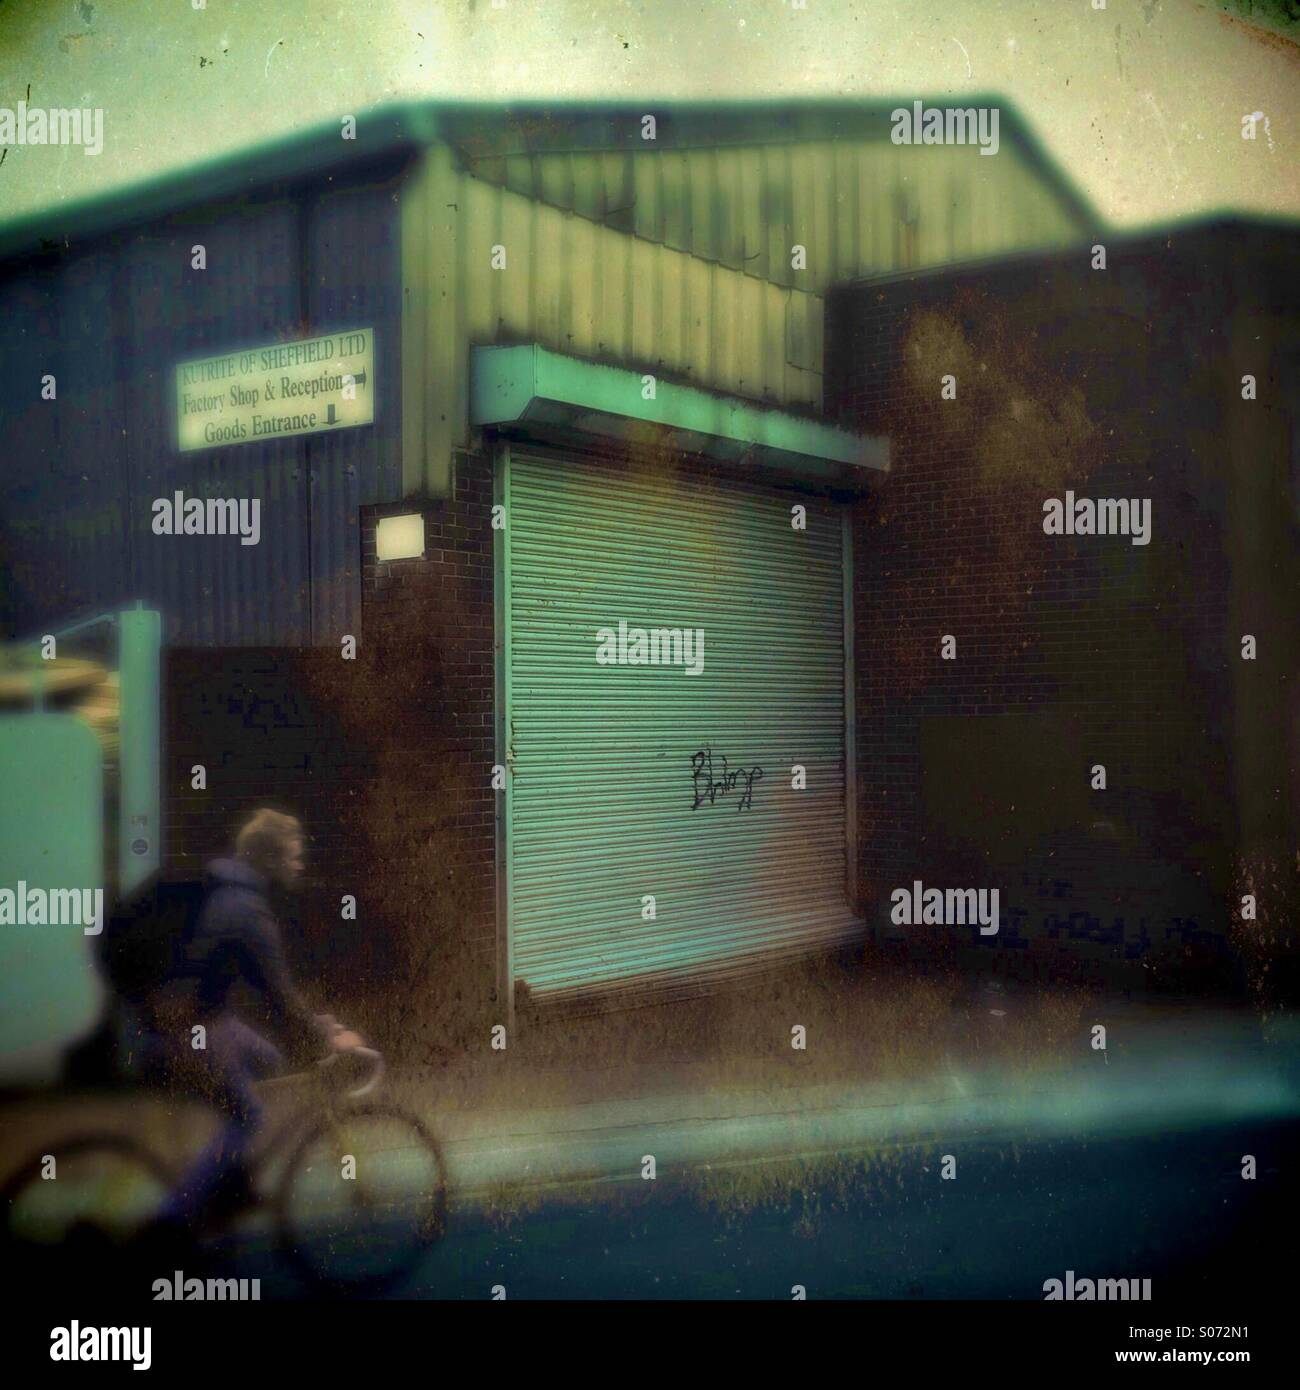 A man in a bike rides past a industrial unit - Stock Image